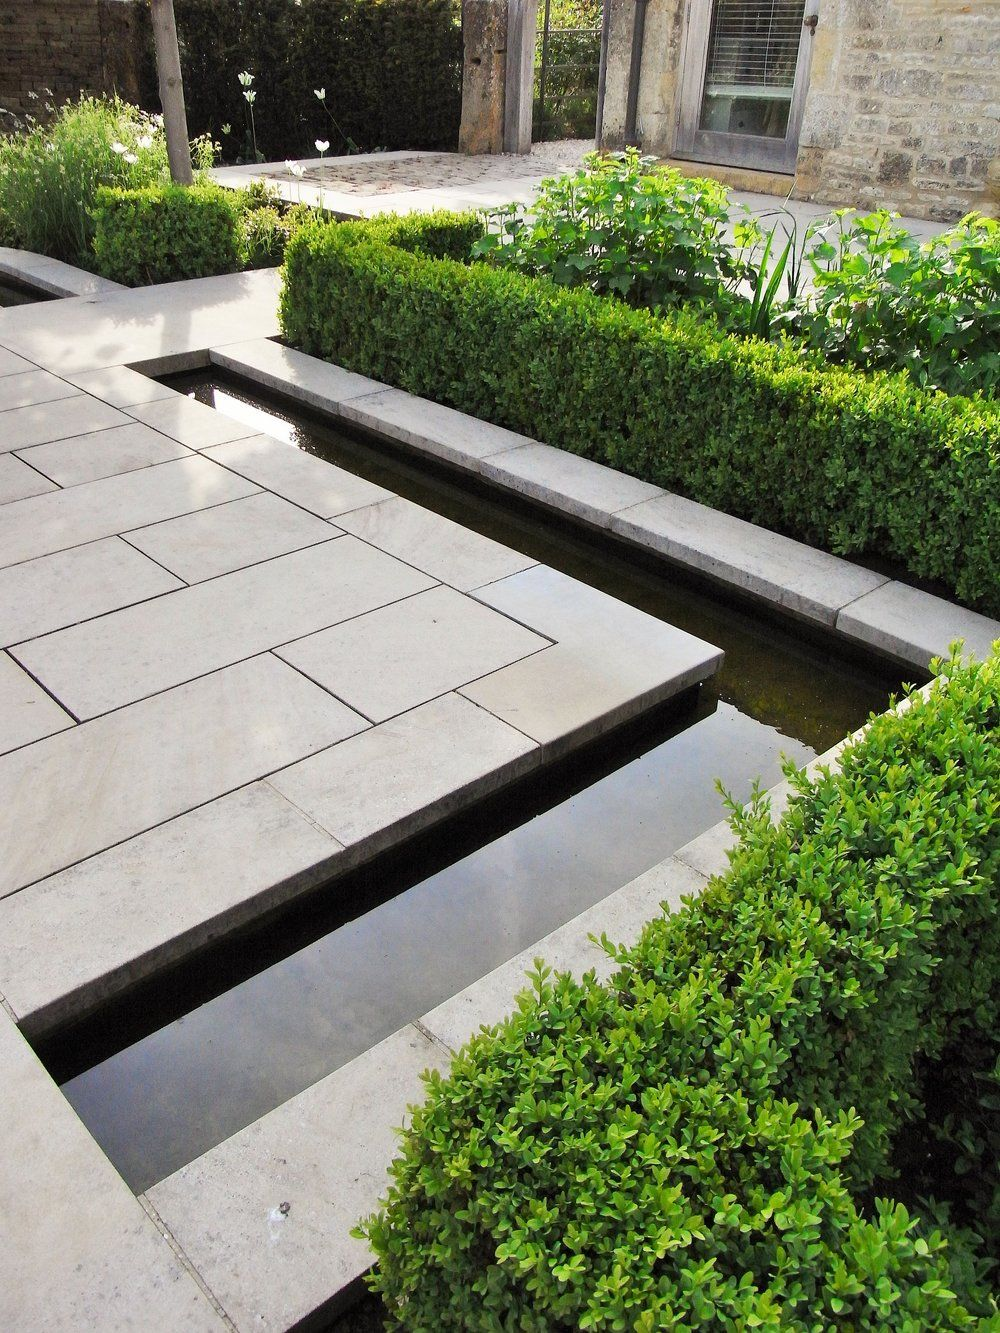 How To Design a Stunning, Practical Patio Part 1 Materials and Styles is part of Contemporary garden, Modern landscaping, Limestone patio, Garden landscape design, Modern garden design, Modern landscape design - If you have any desire to sit outside in your garden, no matter how large or tiny, a thoughtful patio design will make all the difference